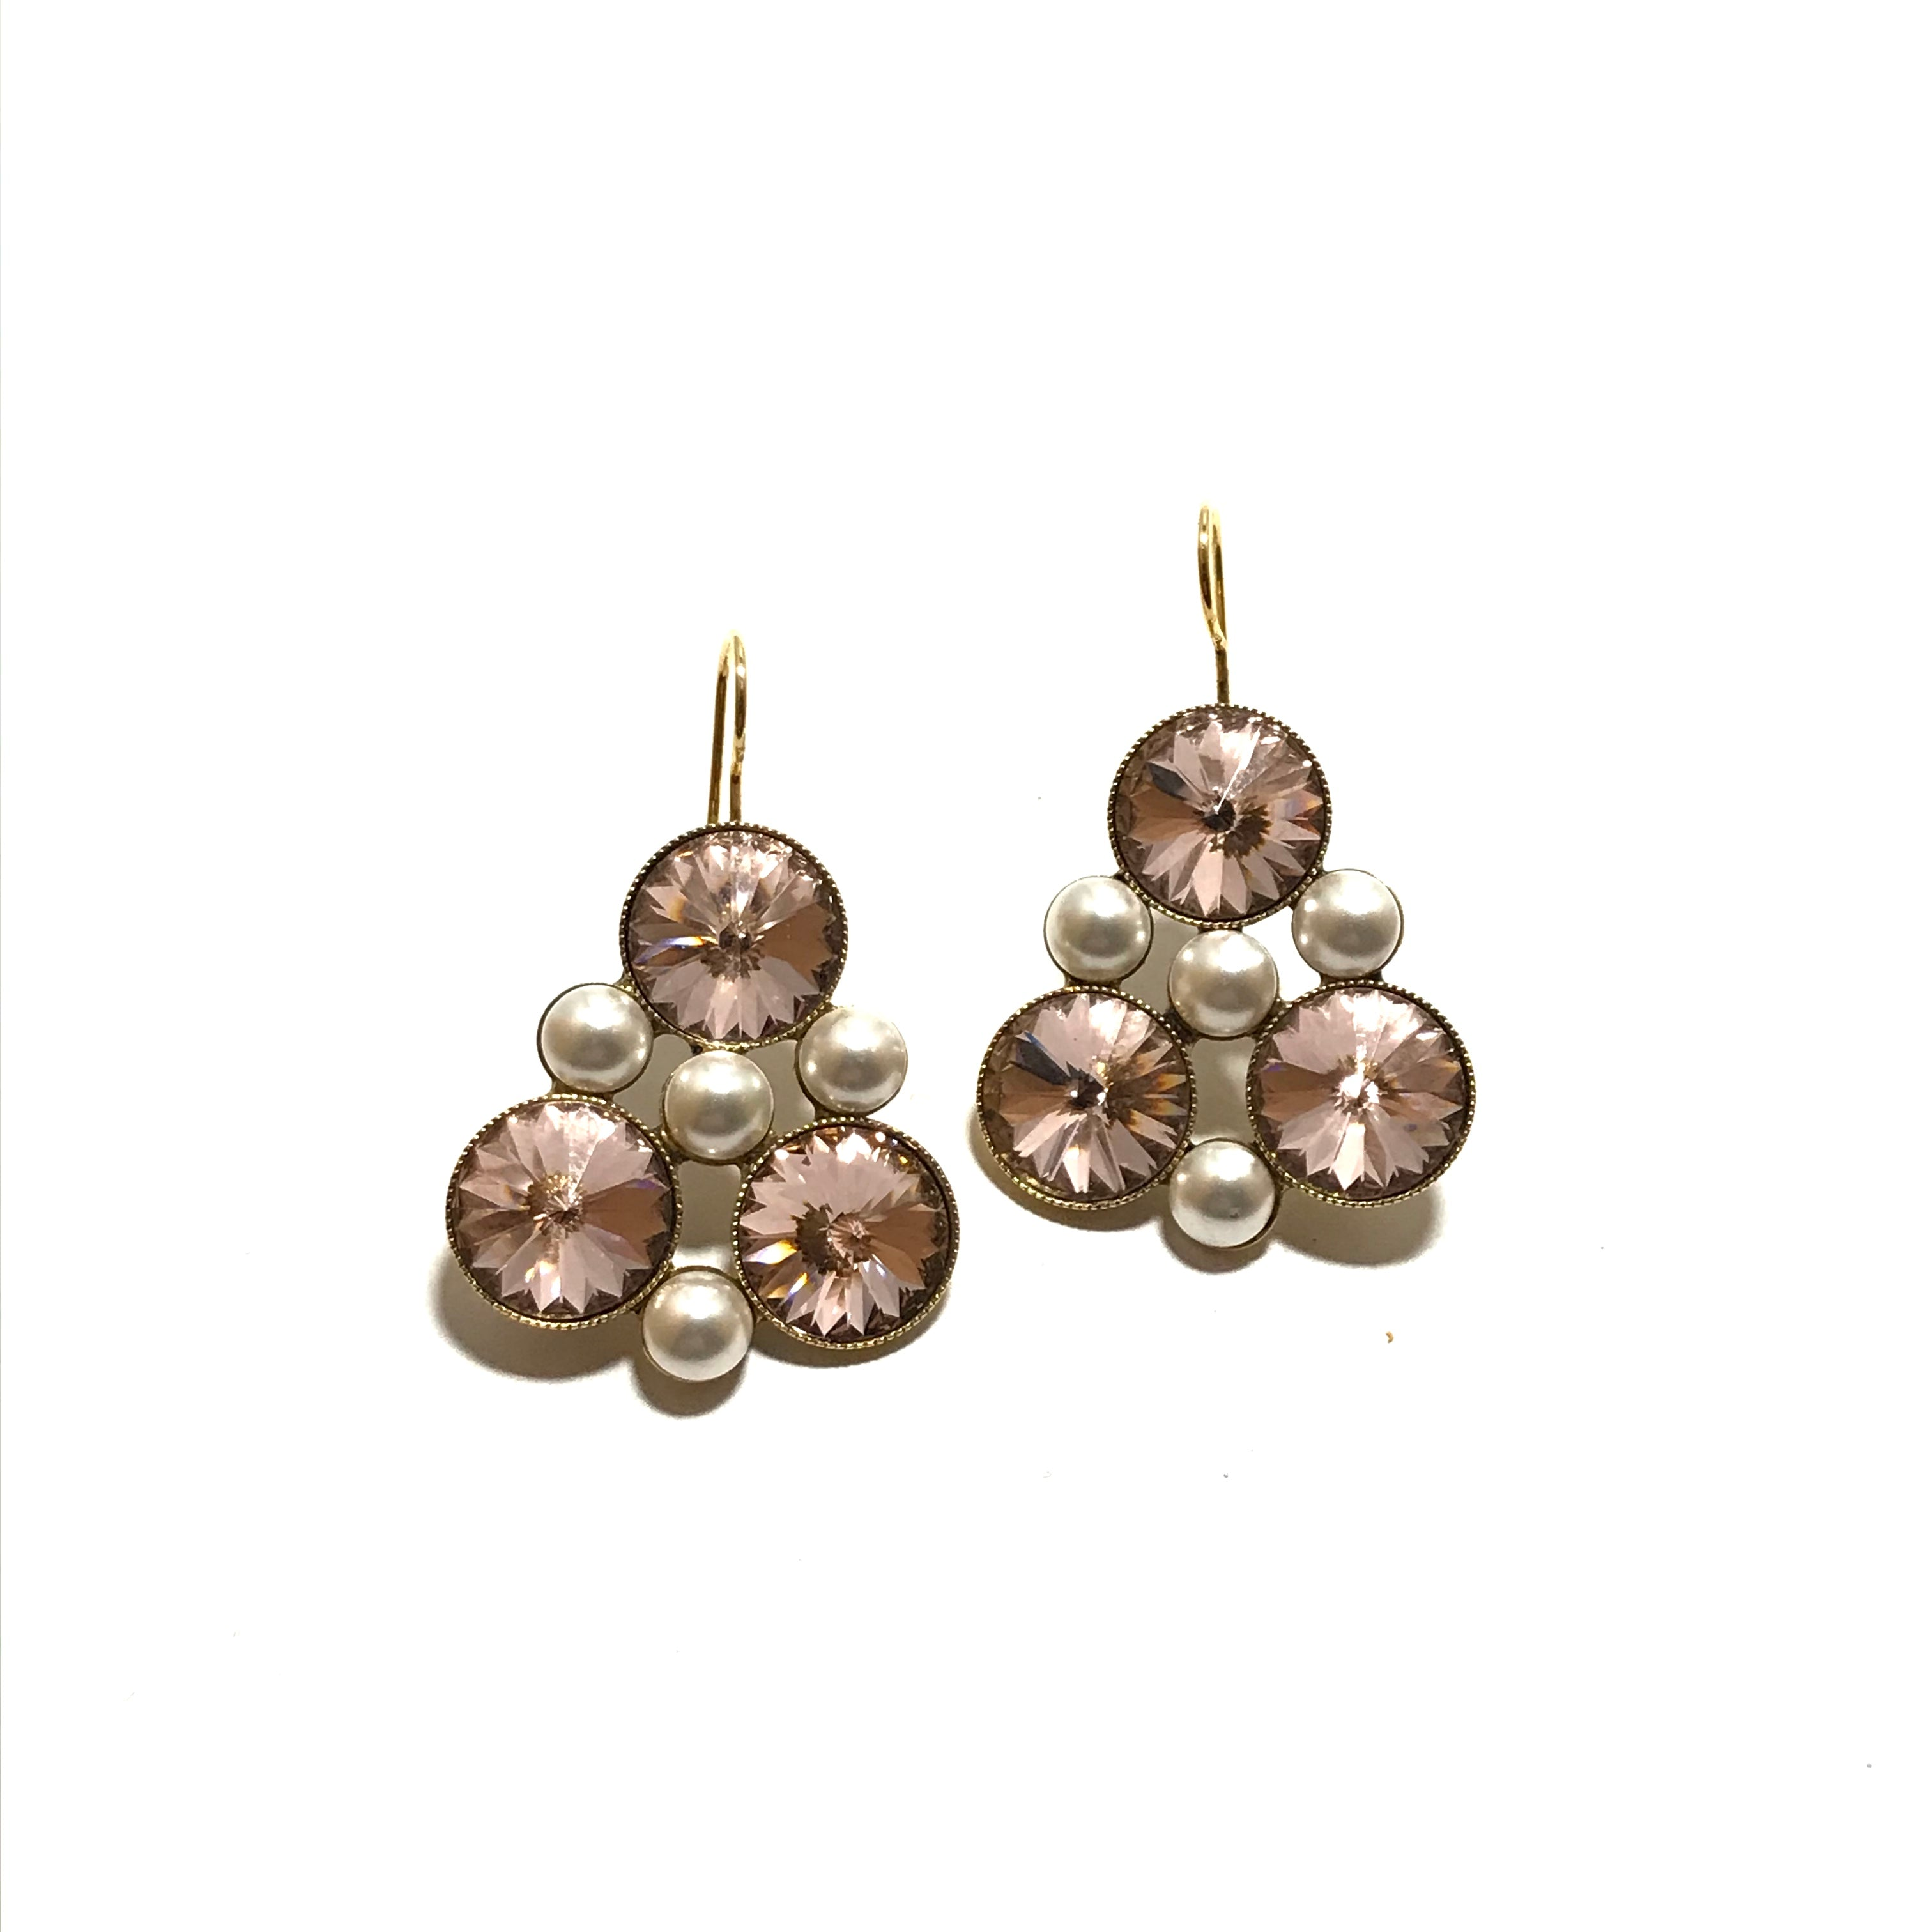 Tova-Button Earring in Astral Pink